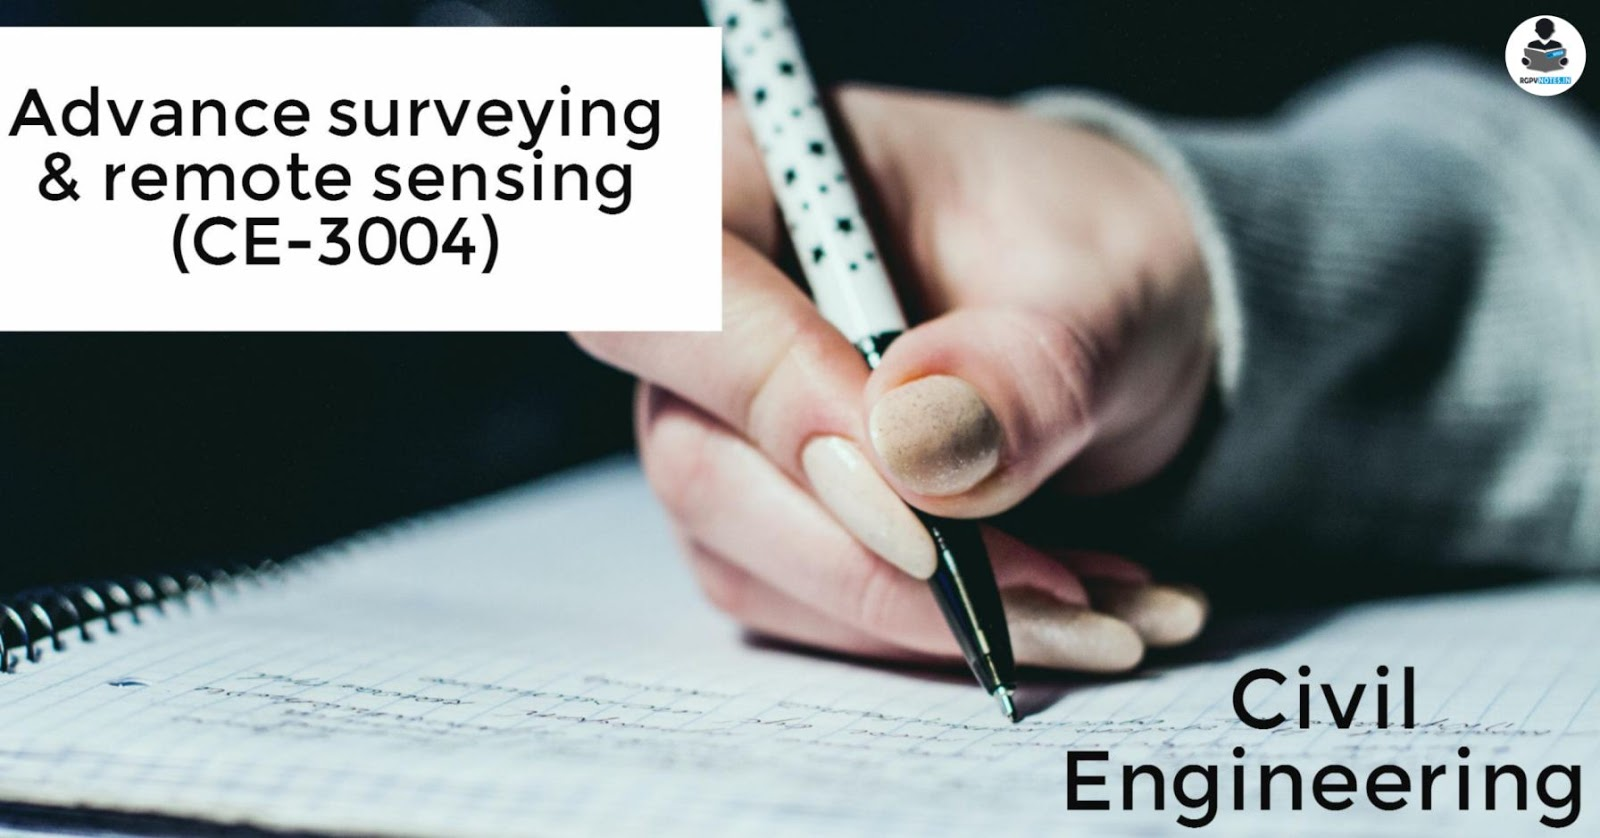 CE3004 - Advance surveying & remote sensing - RGPV notes CBGS